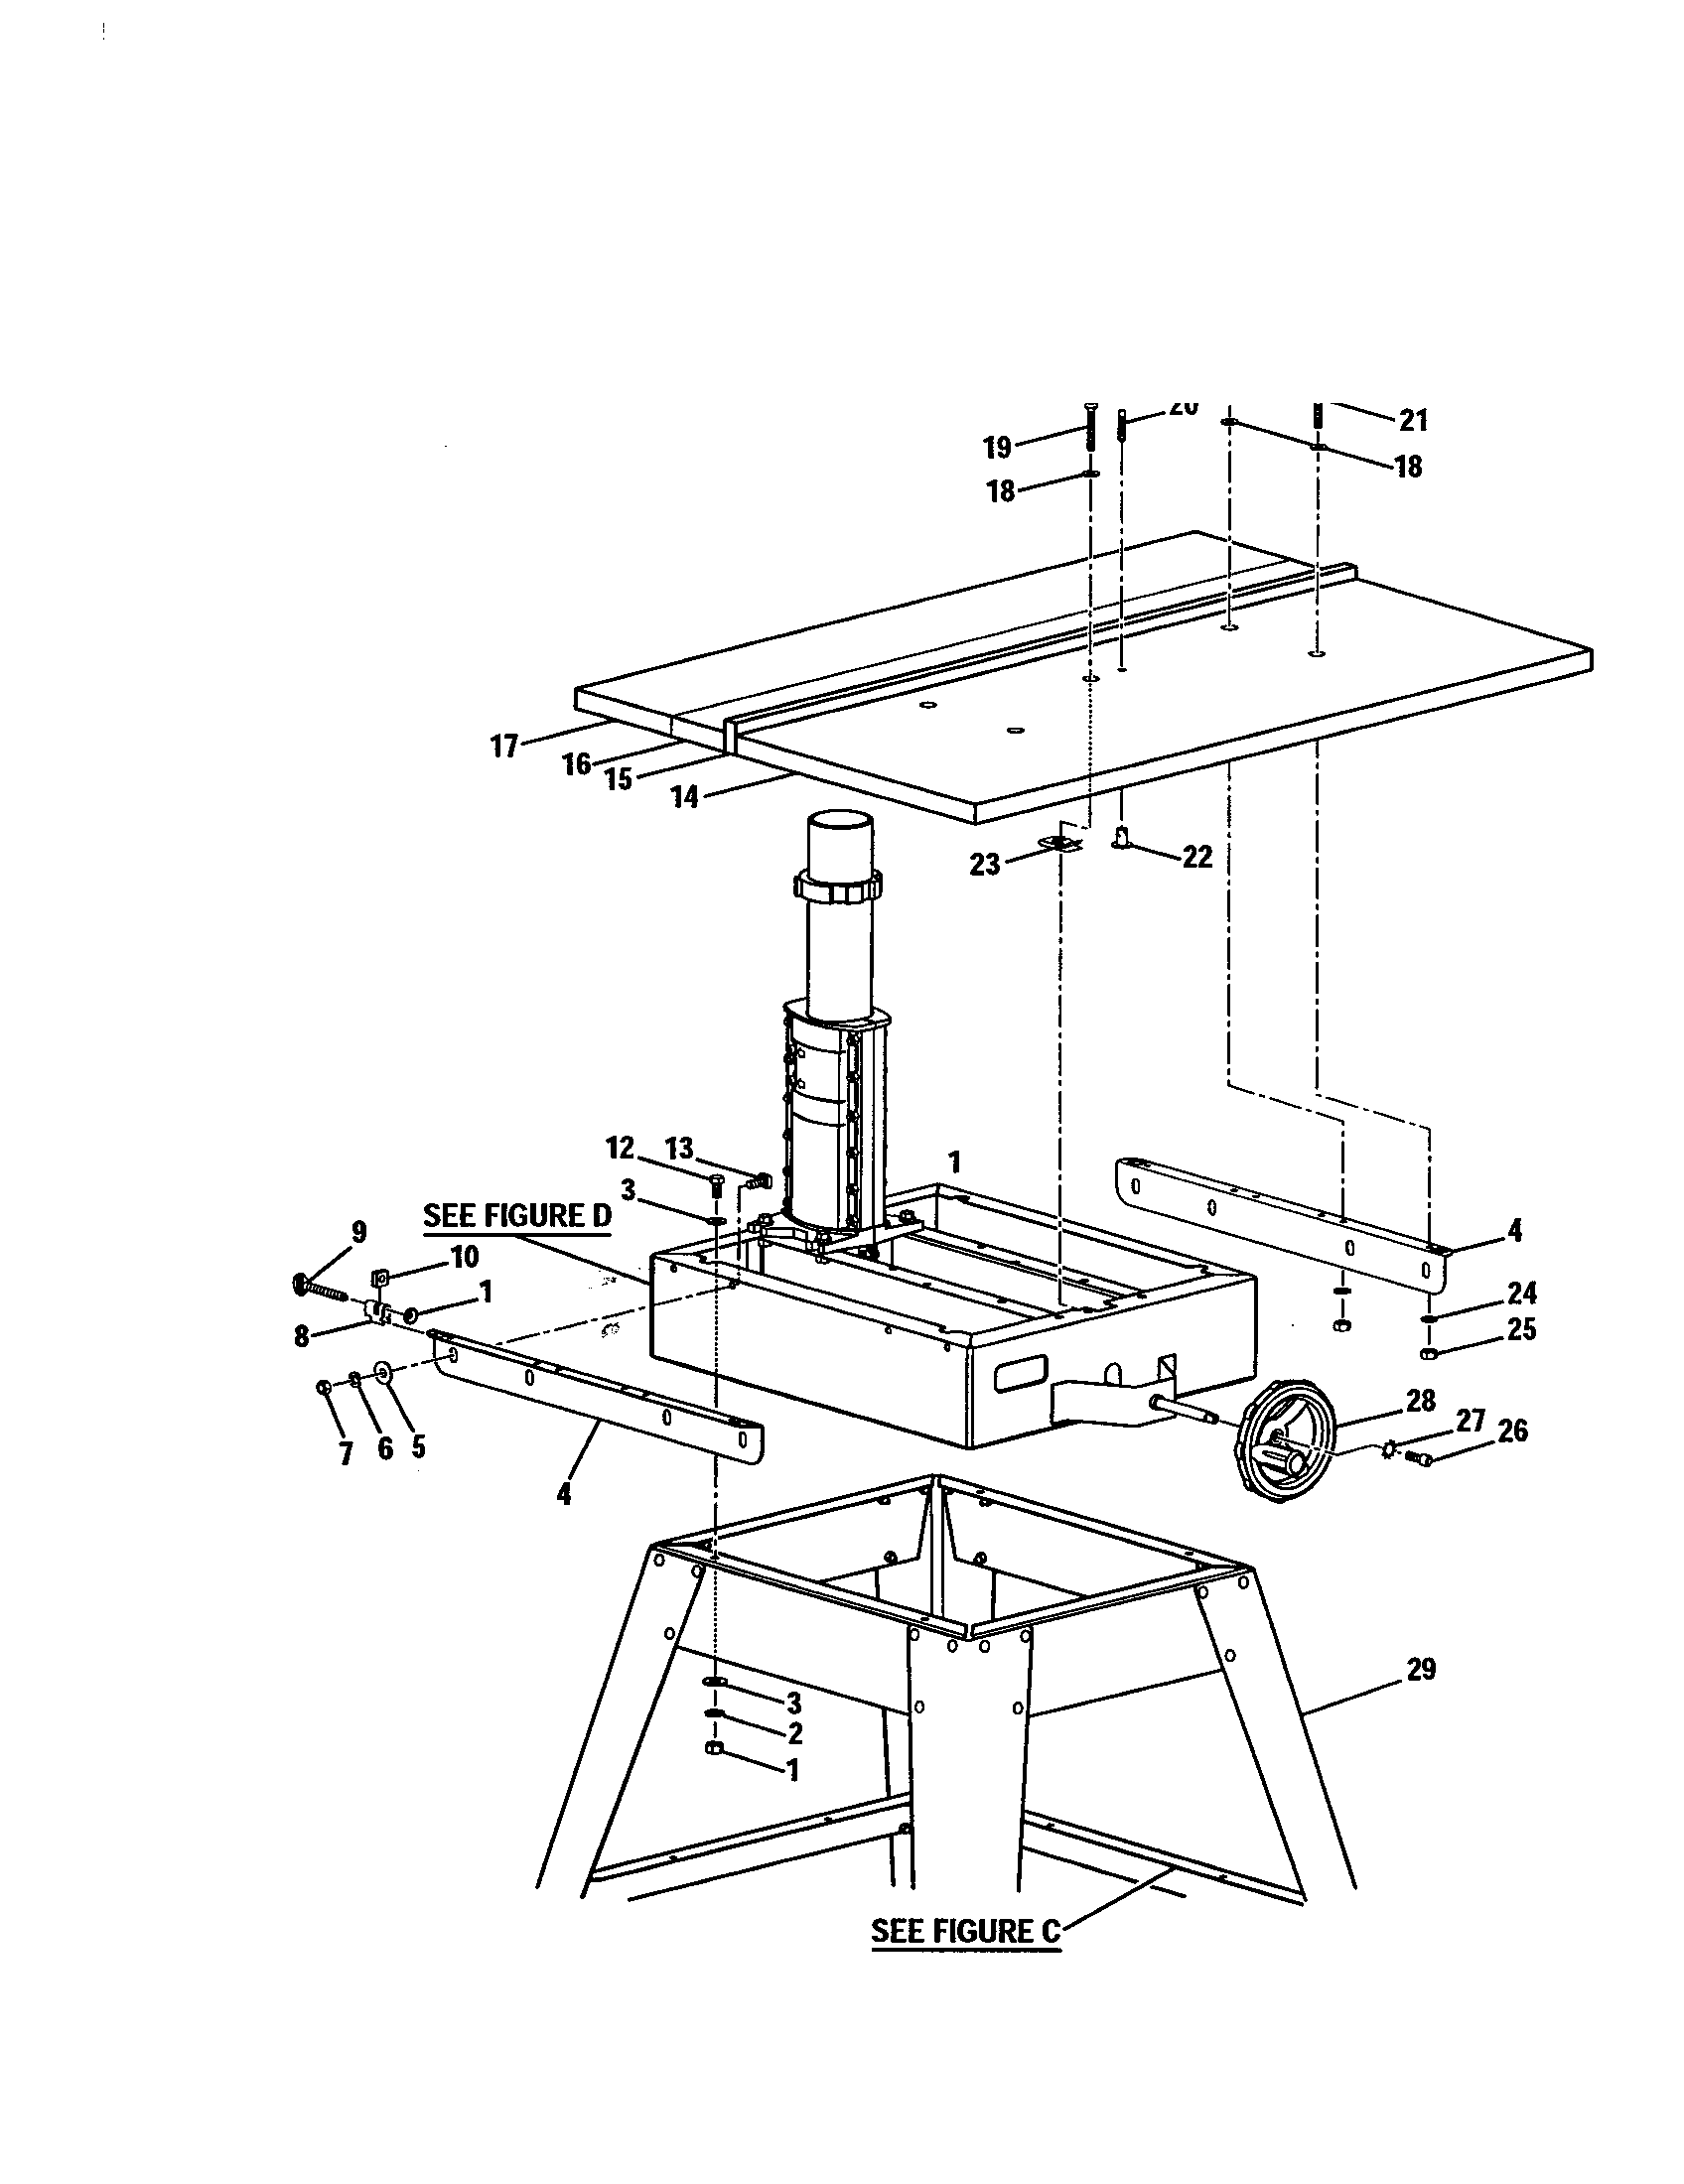 sear site information on radial arm saw [ 1696 x 2200 Pixel ]